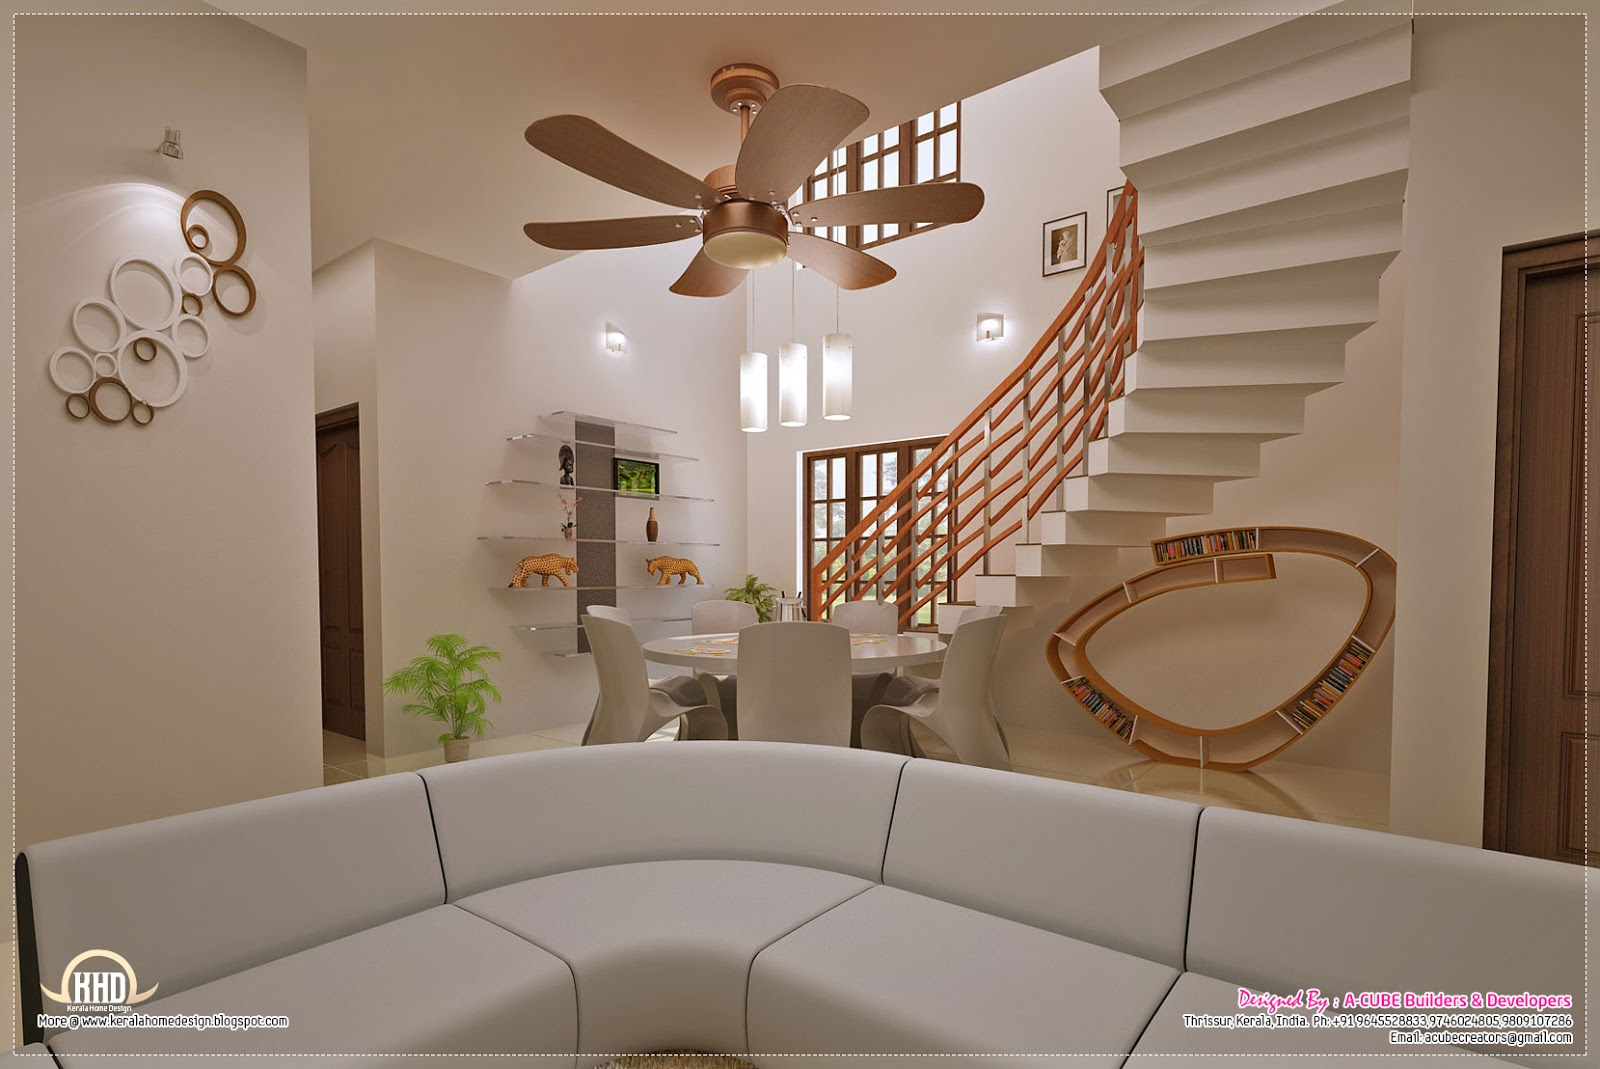 Awesome interior decoration ideas home kerala plans for Beautiful interior design